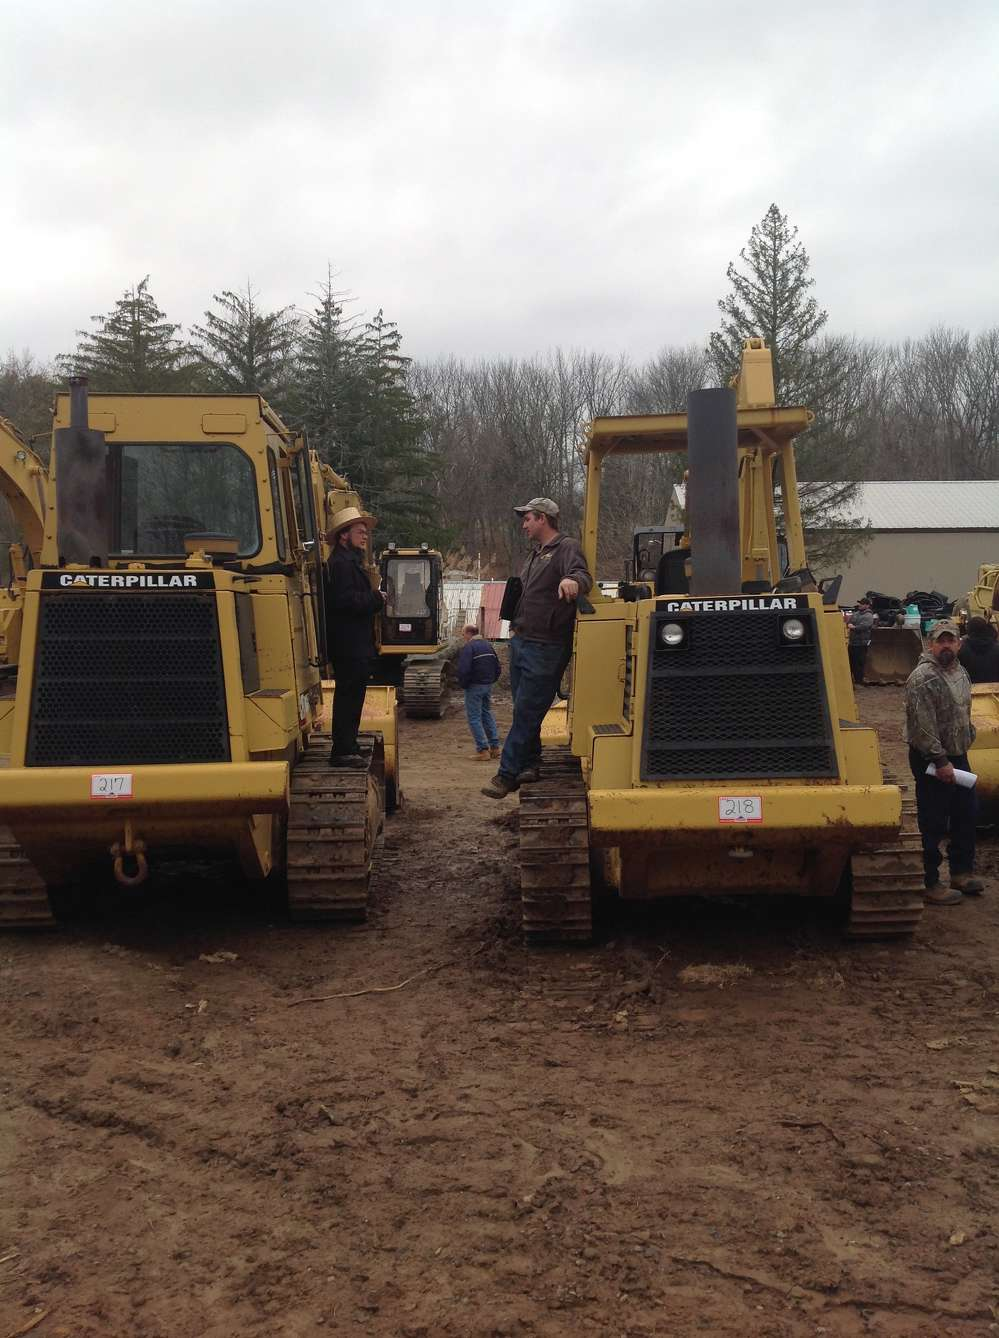 Gideon Stoltzfus (L) and Aaron Hoover, A&A Enterprises, Denver, Pa., discuss auction strategy on these two Cat dozers.